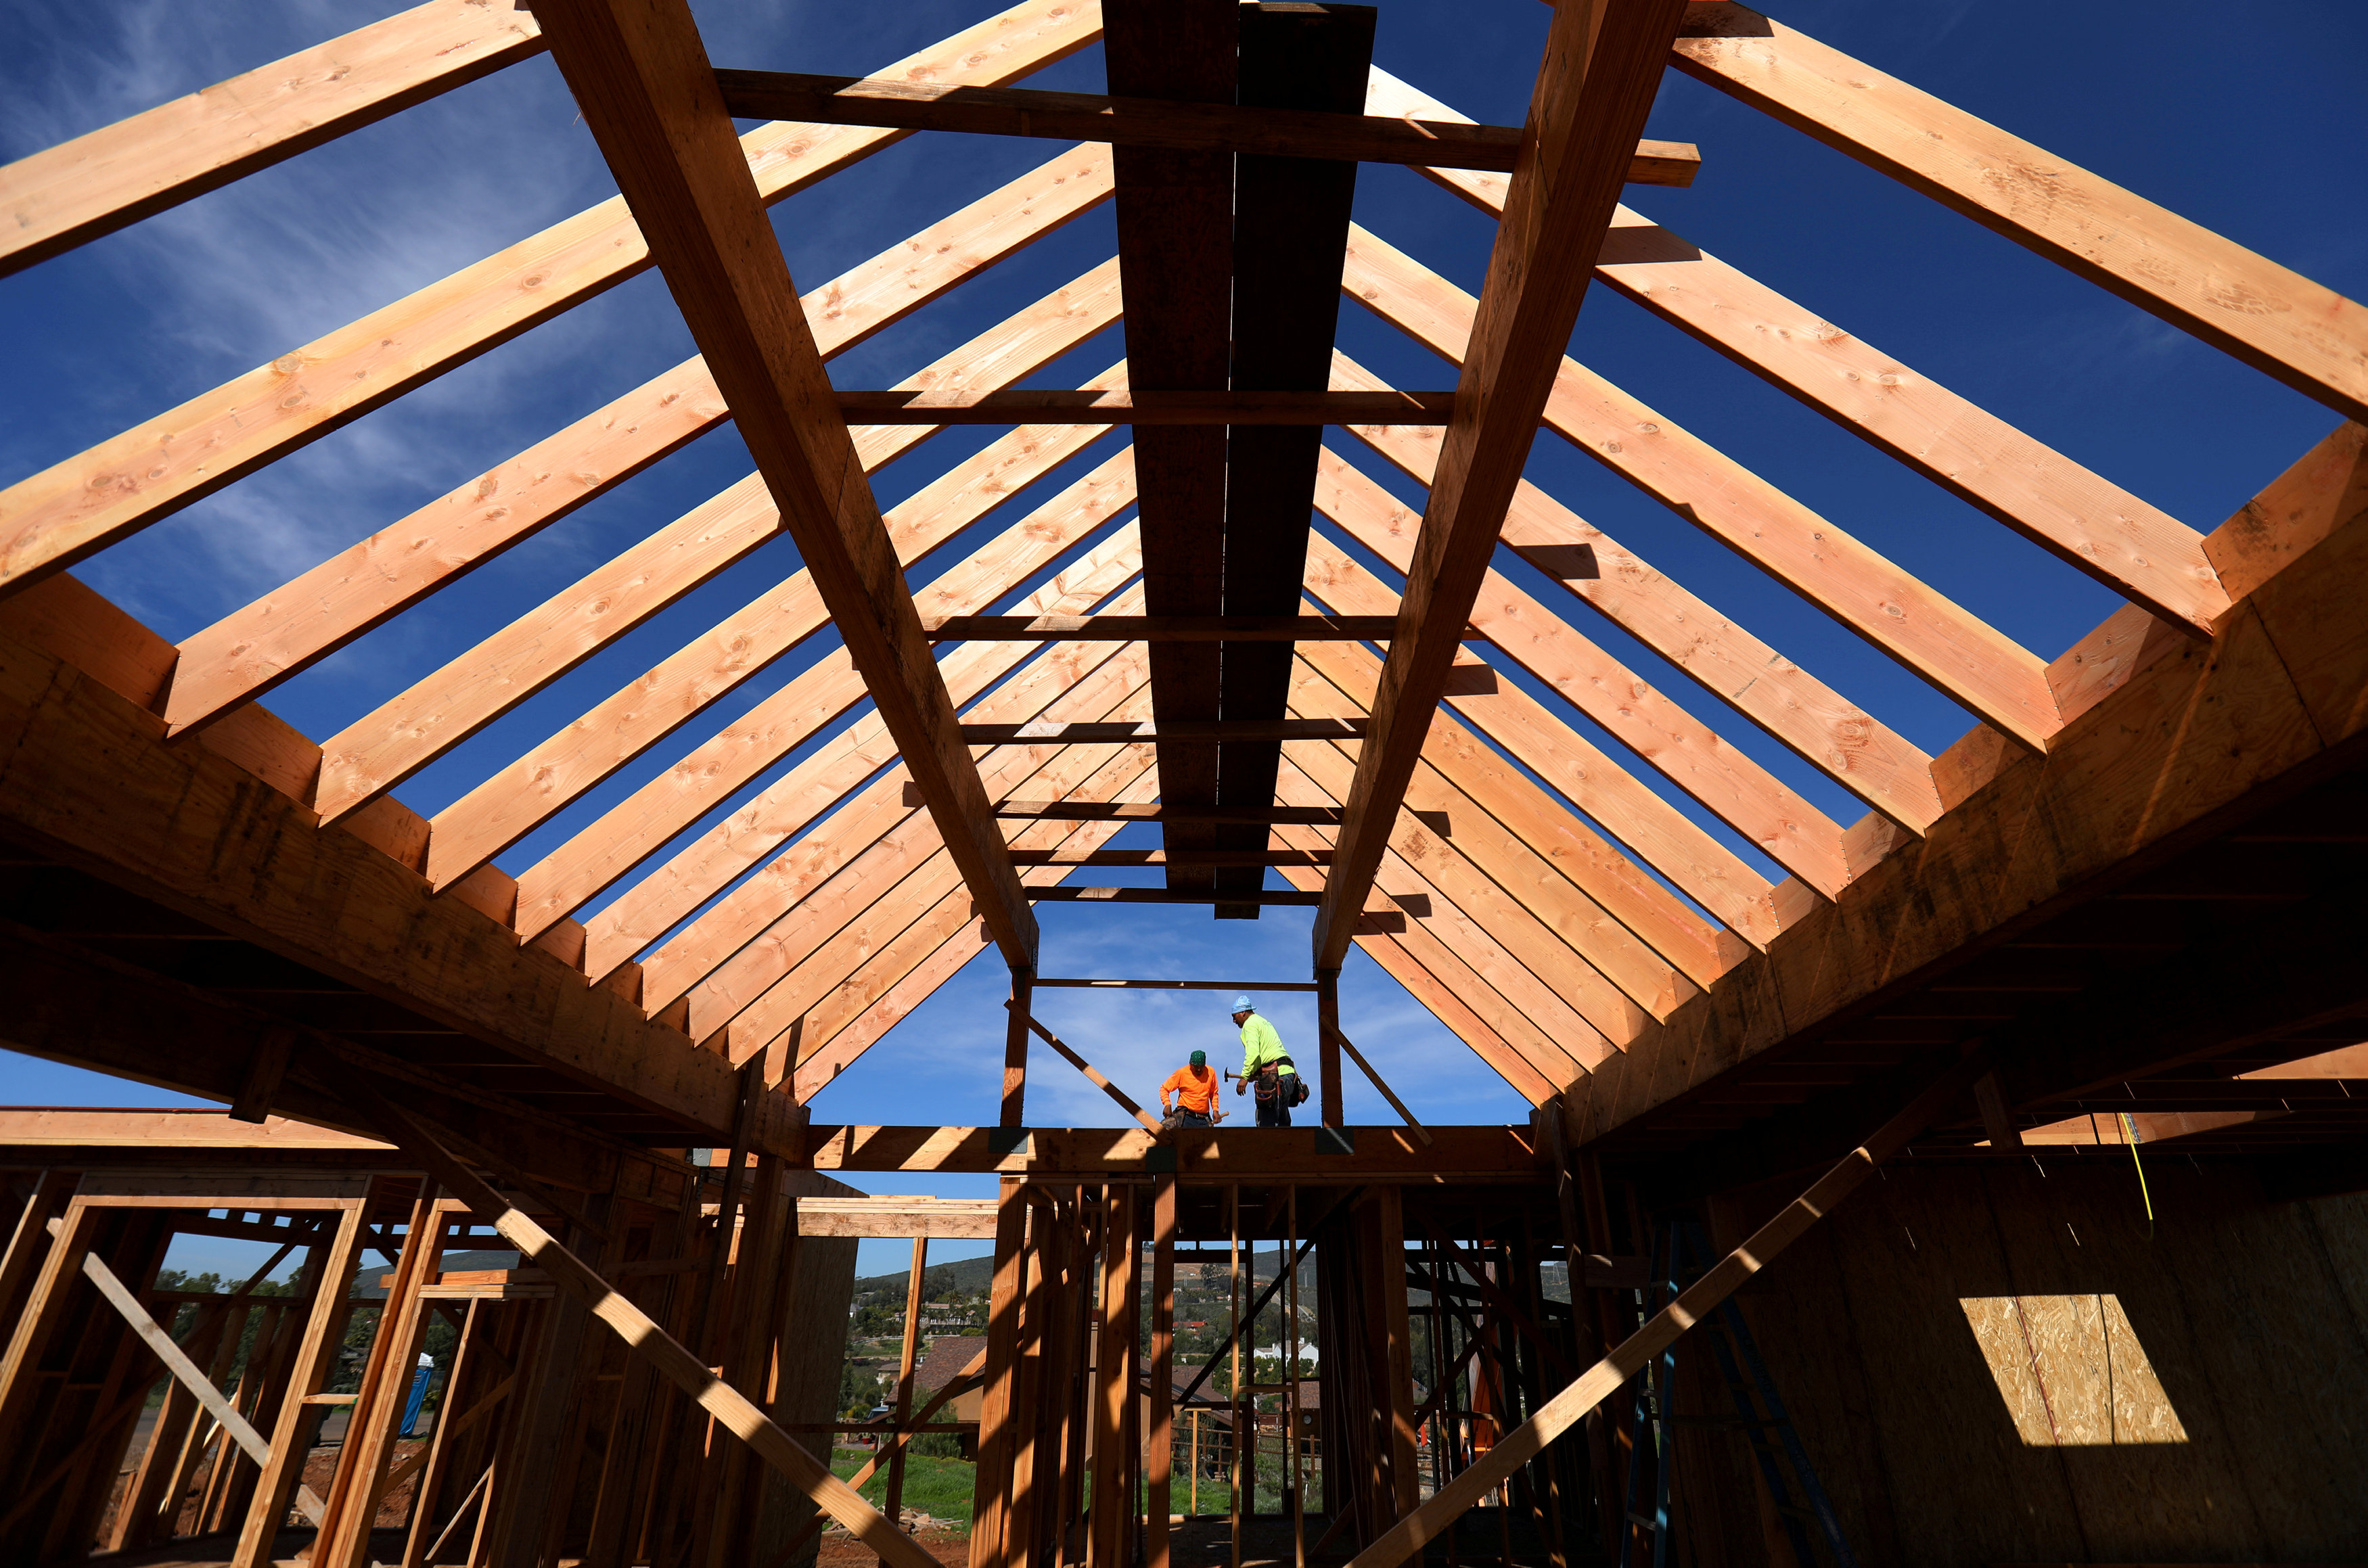 FILE PHOTO -- Construction workers build a single family home in San Diego, California, U.S. on February 15, 2017. REUTERS/Mike Blake/File Photo